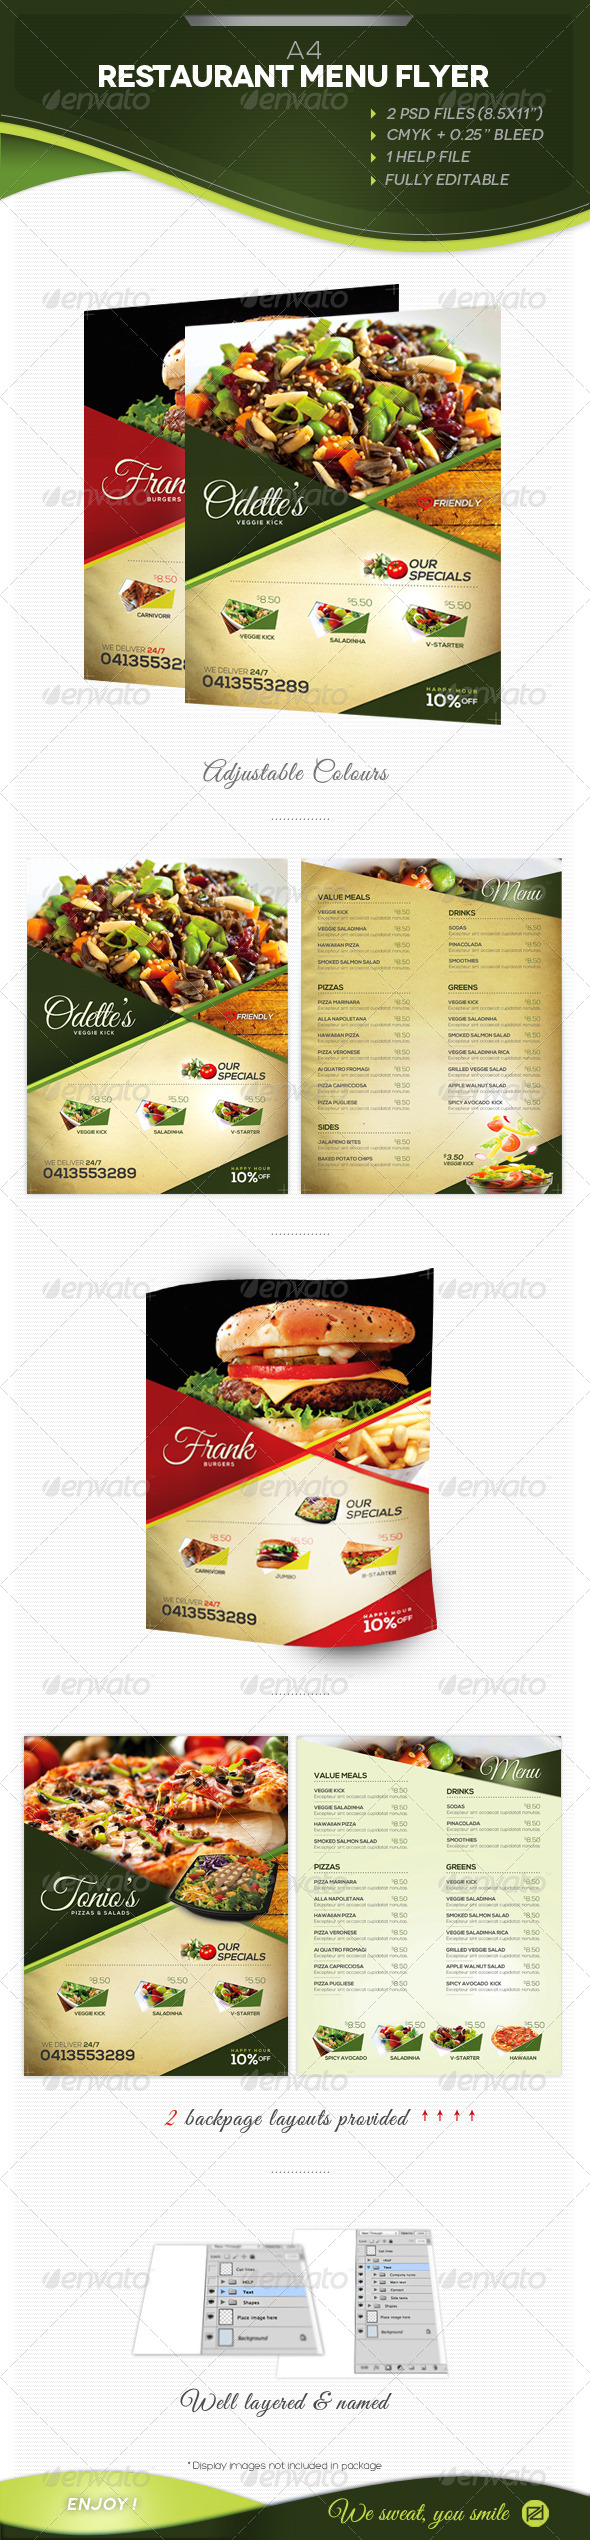 A4 Restaurant Menu - Restaurant Flyers